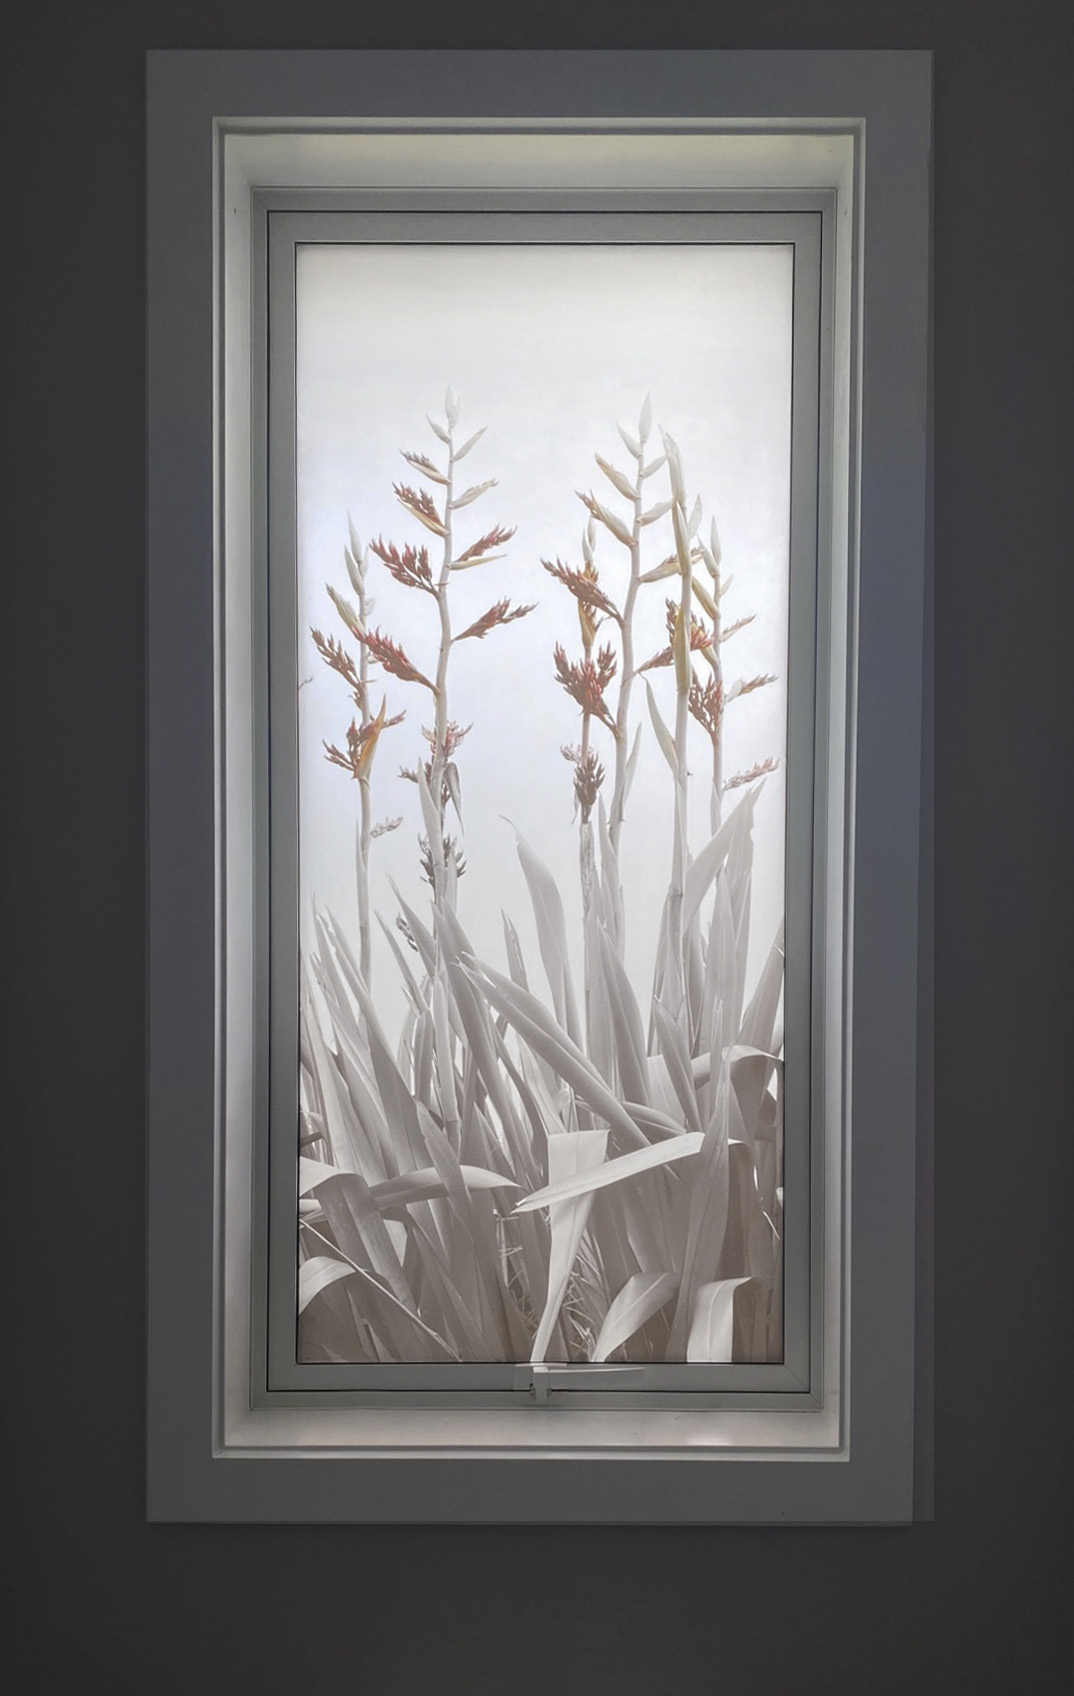 flax-frosted-printed-privacy-window-film-lucy-g.jpg